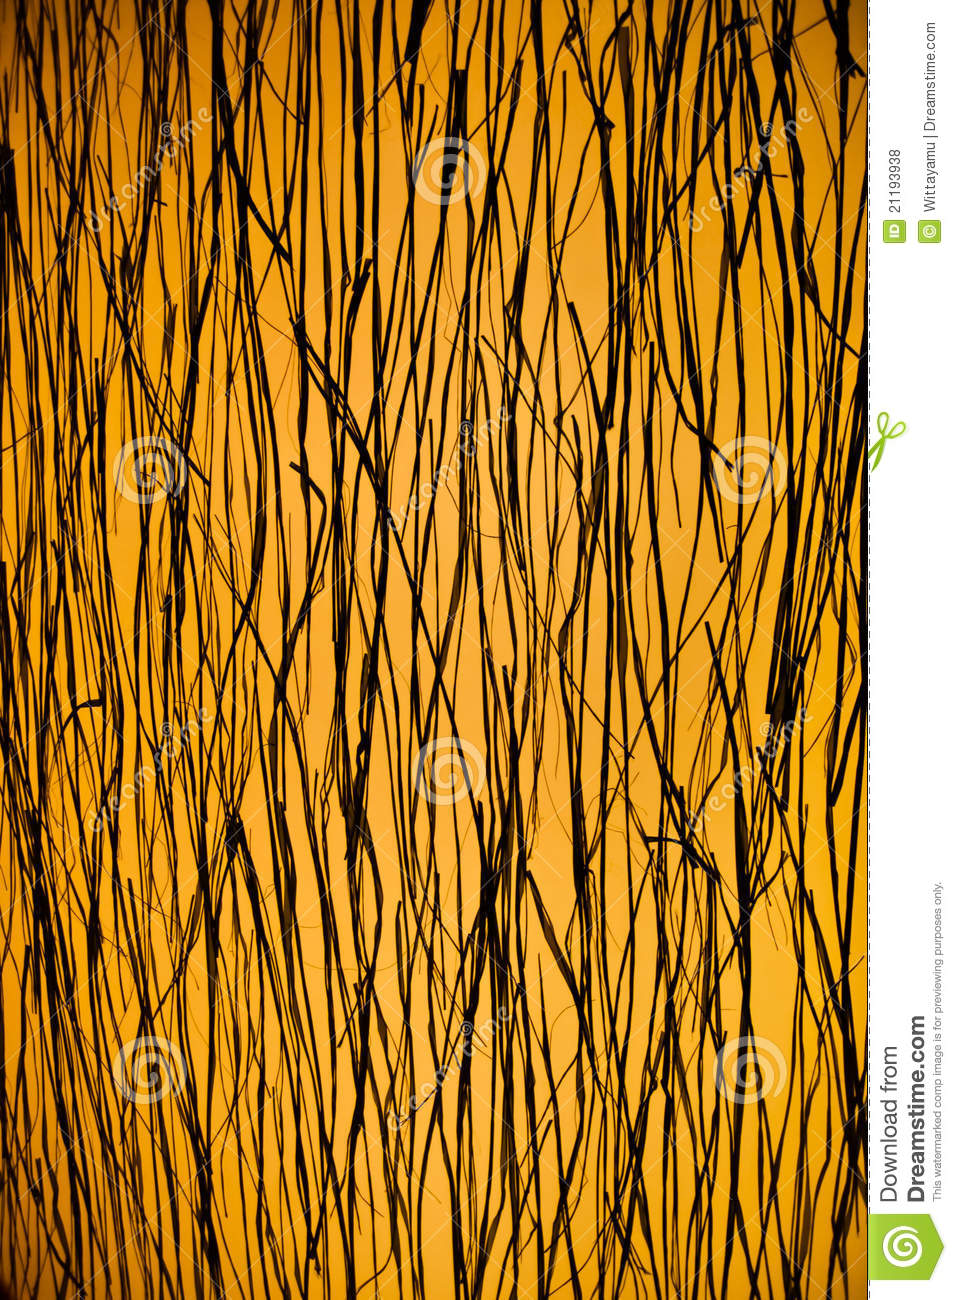 A yellow brown background